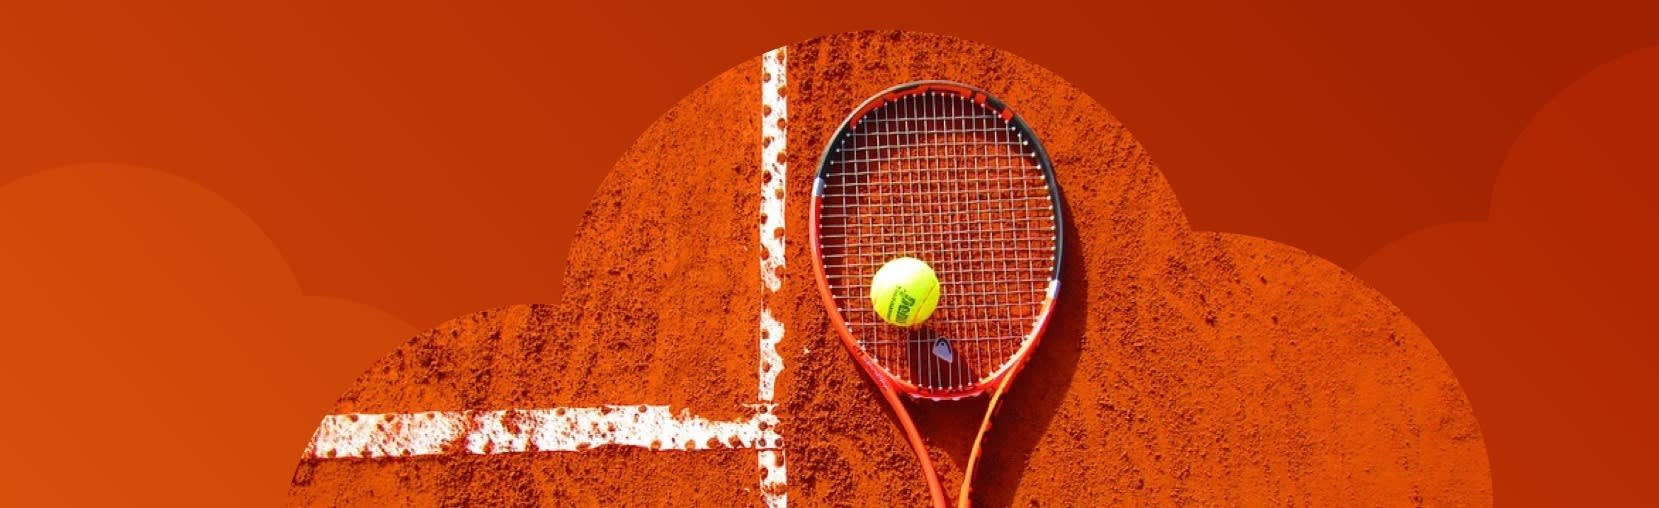 2019 French Open Player Performance - what does the data say?